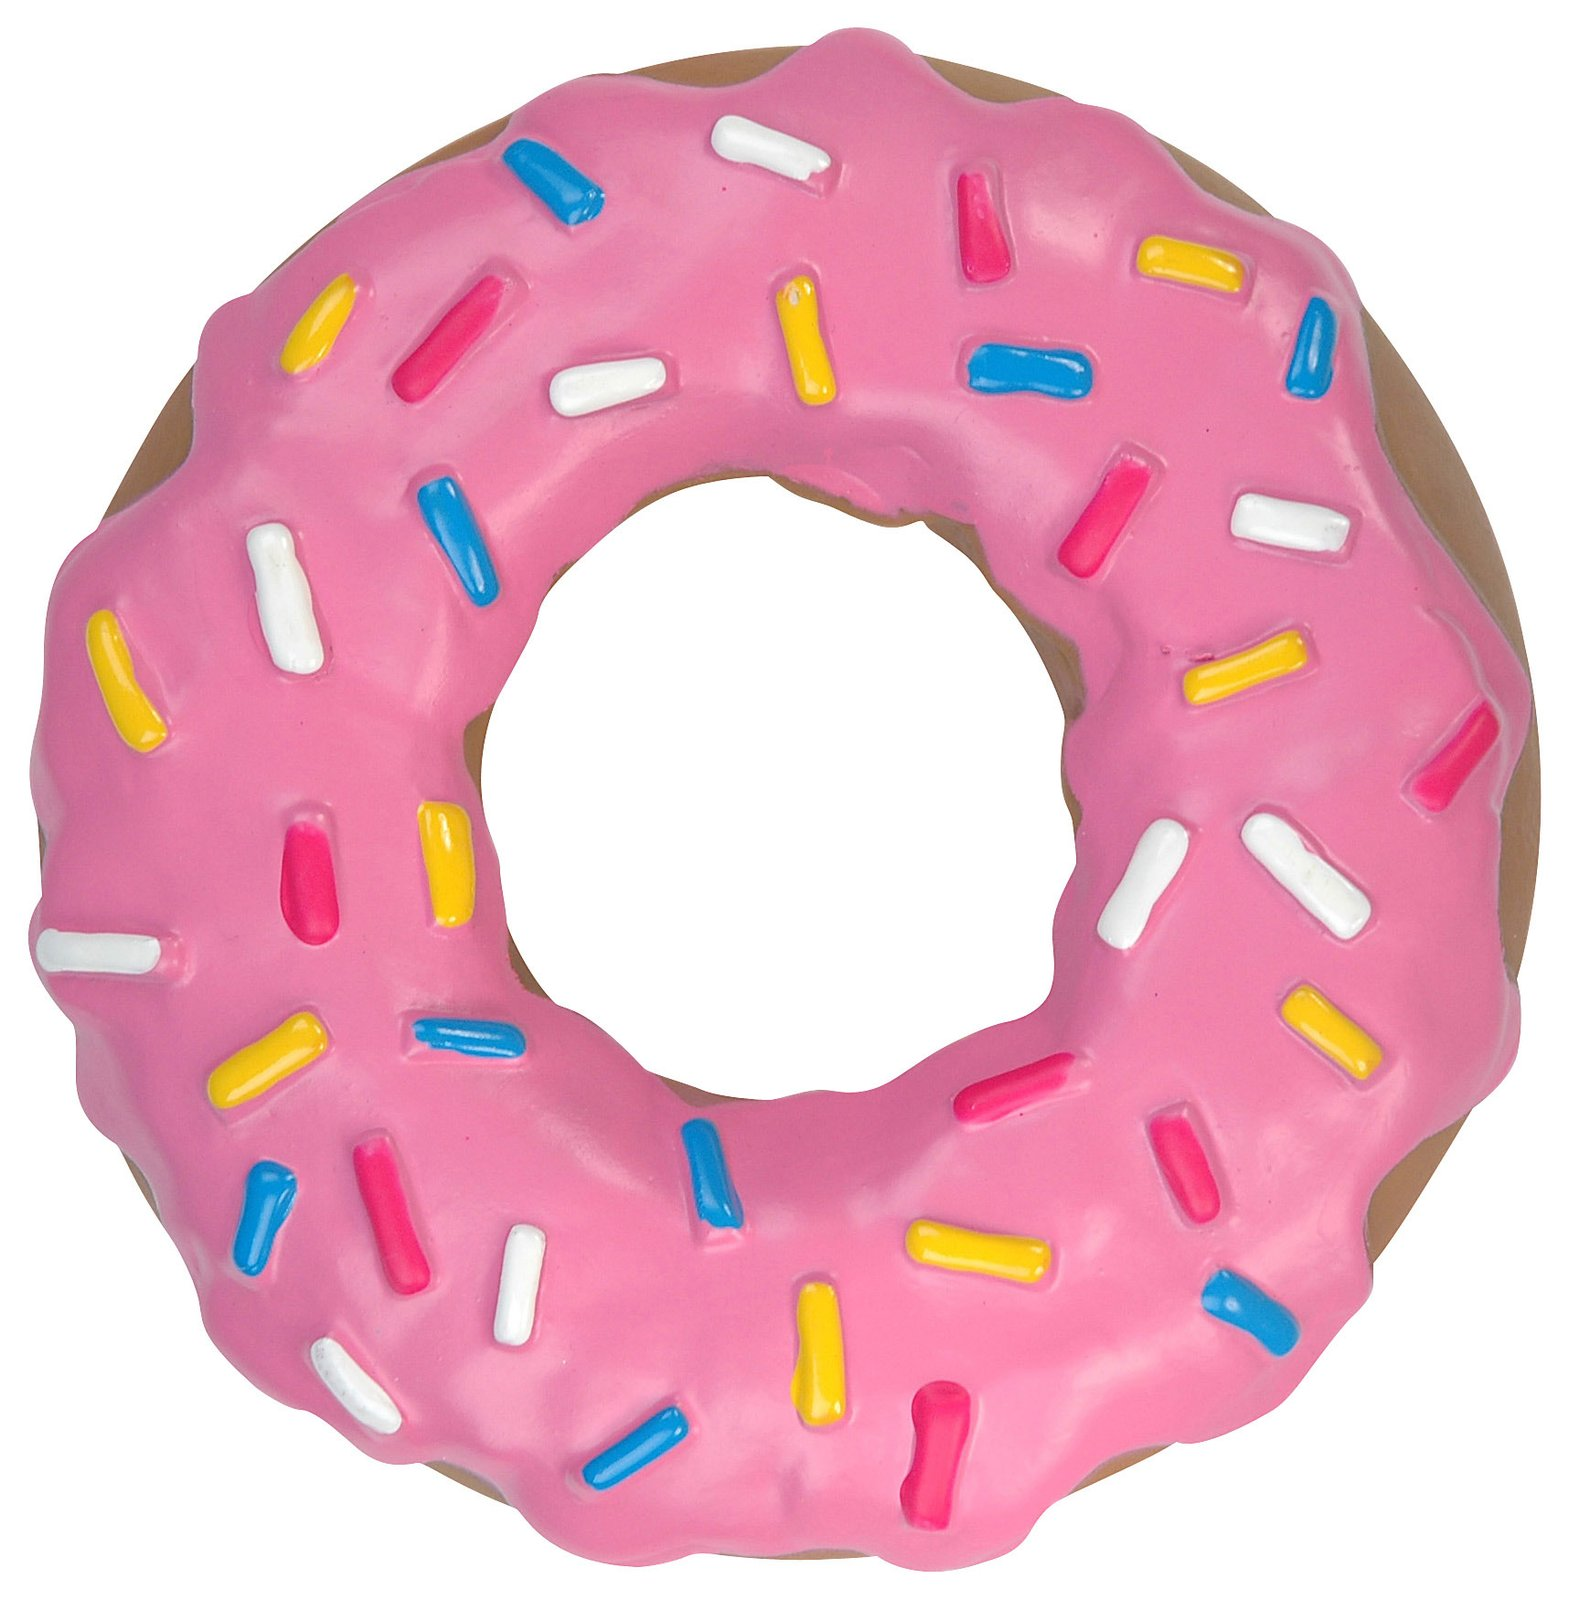 Donut Clip Art. Advertising. You Need To Enable Javascript